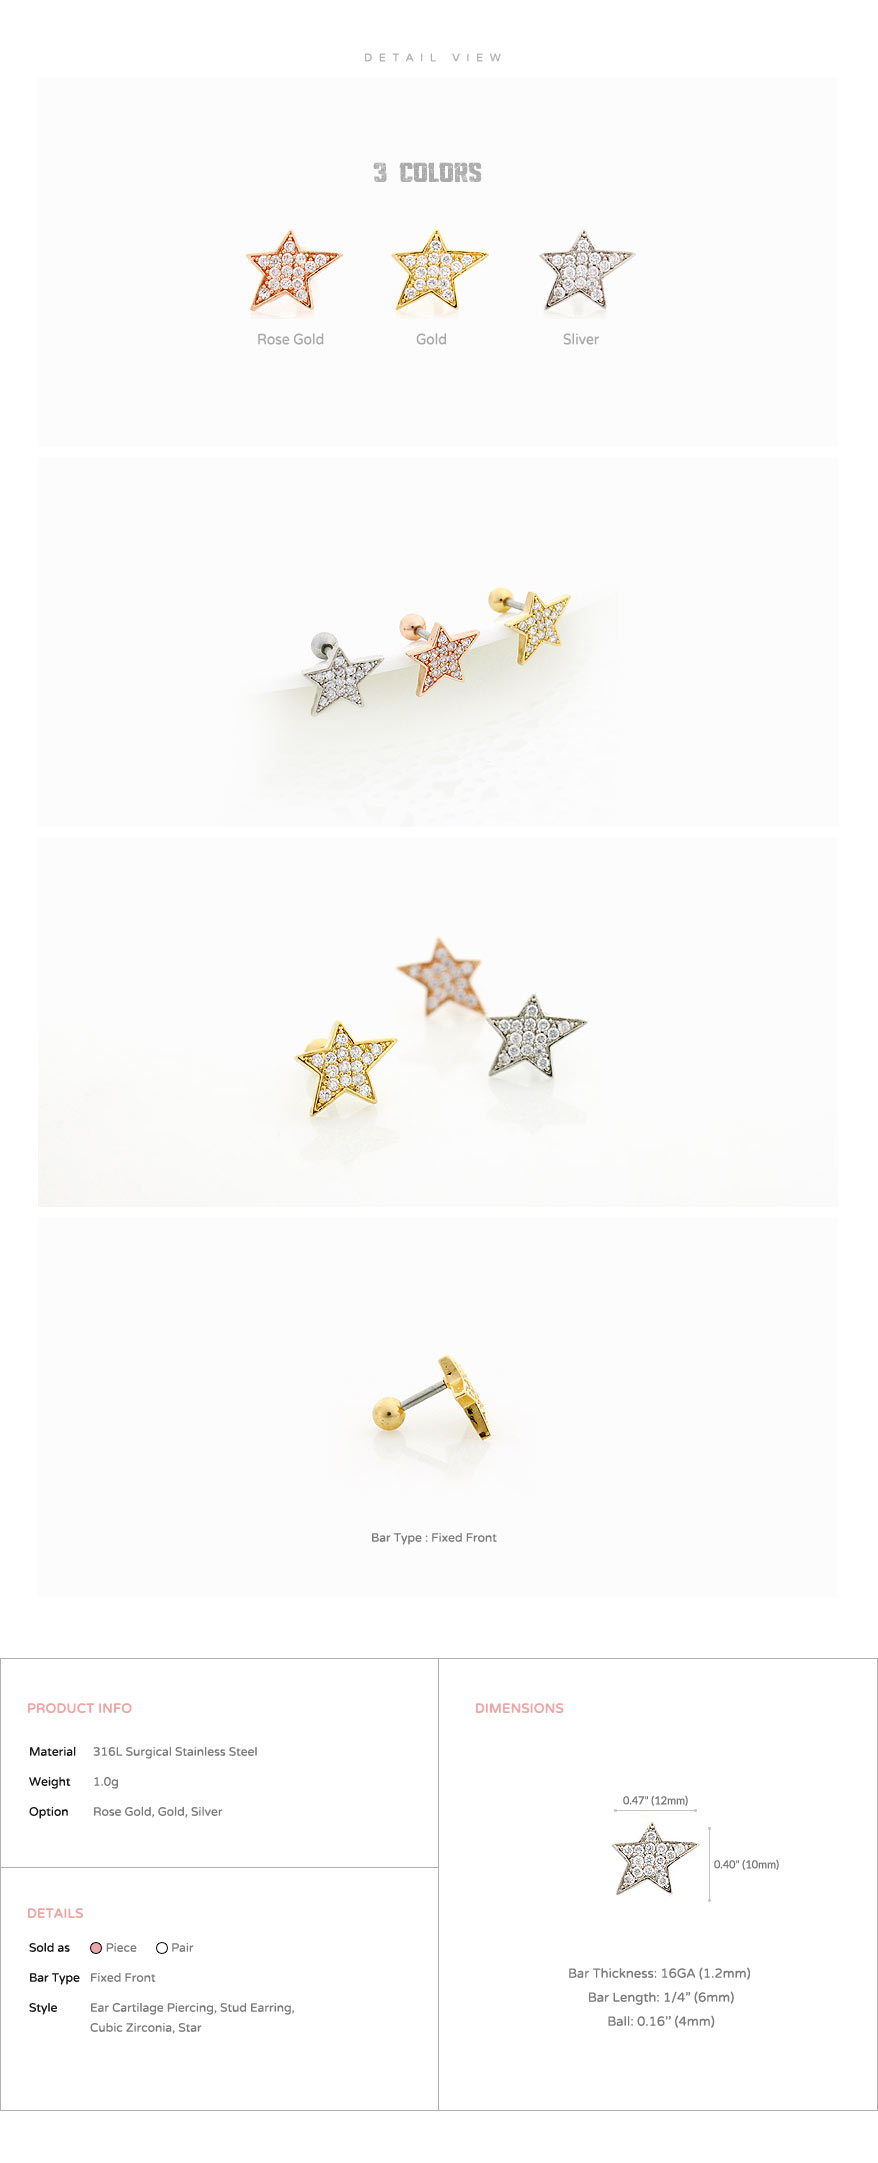 ear_studs_piercing_Cartilage_earrings_16g_316l_Surgical_Stainless_Steel_korean_asian_style_jewelry_barbell_crystal_star